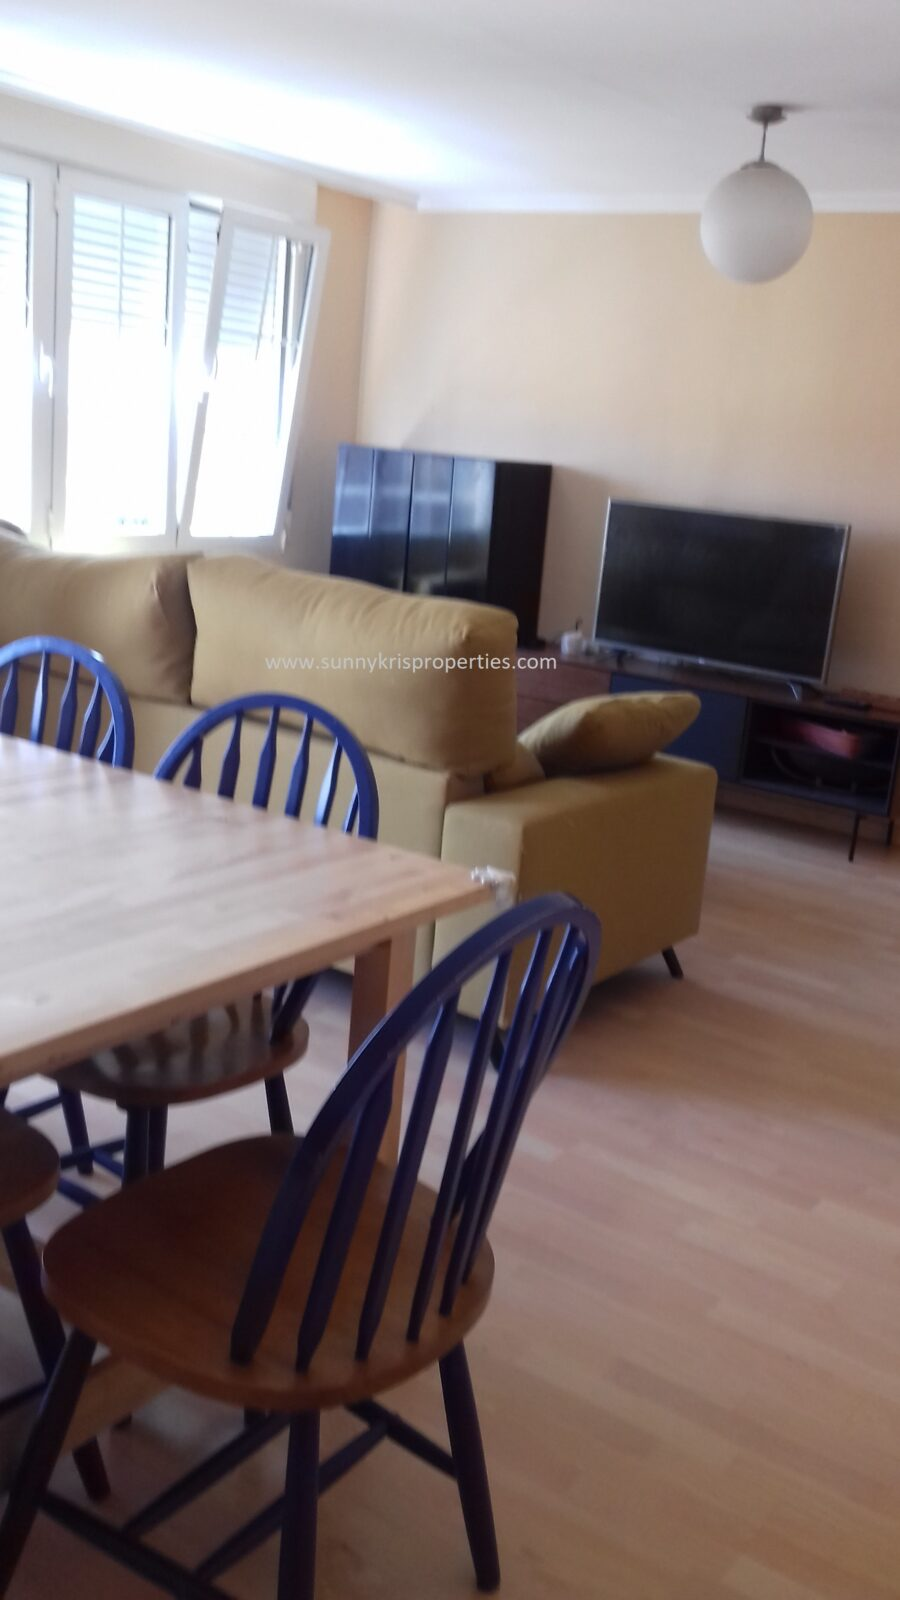 Excellent Penthouse a Step Away From the Centre of Alicante!